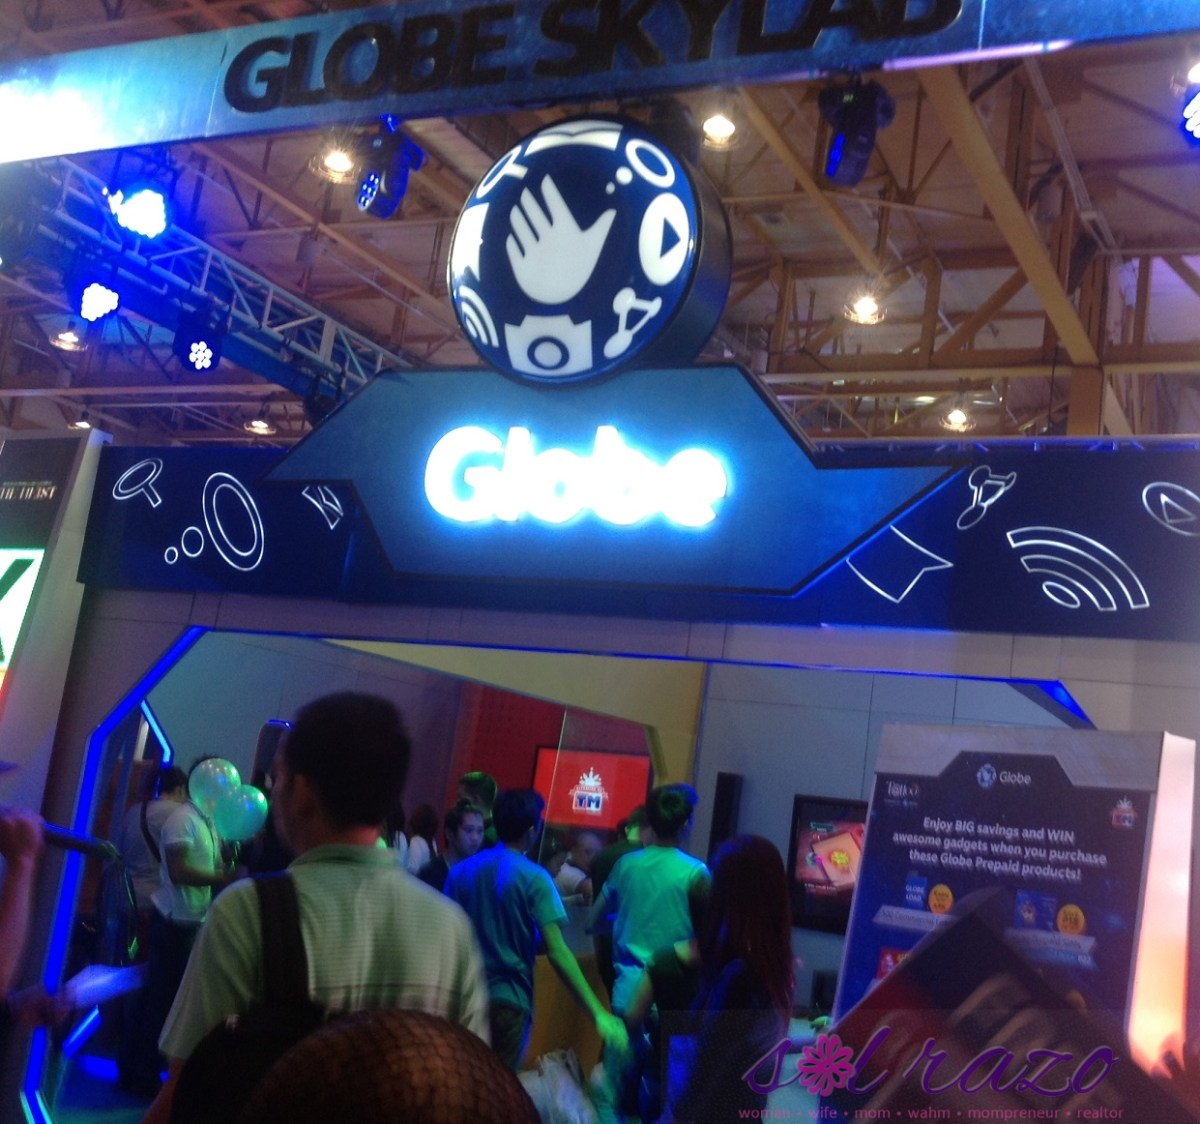 Globe boosts support to Puregold's Tindahan ni Aling Puring members